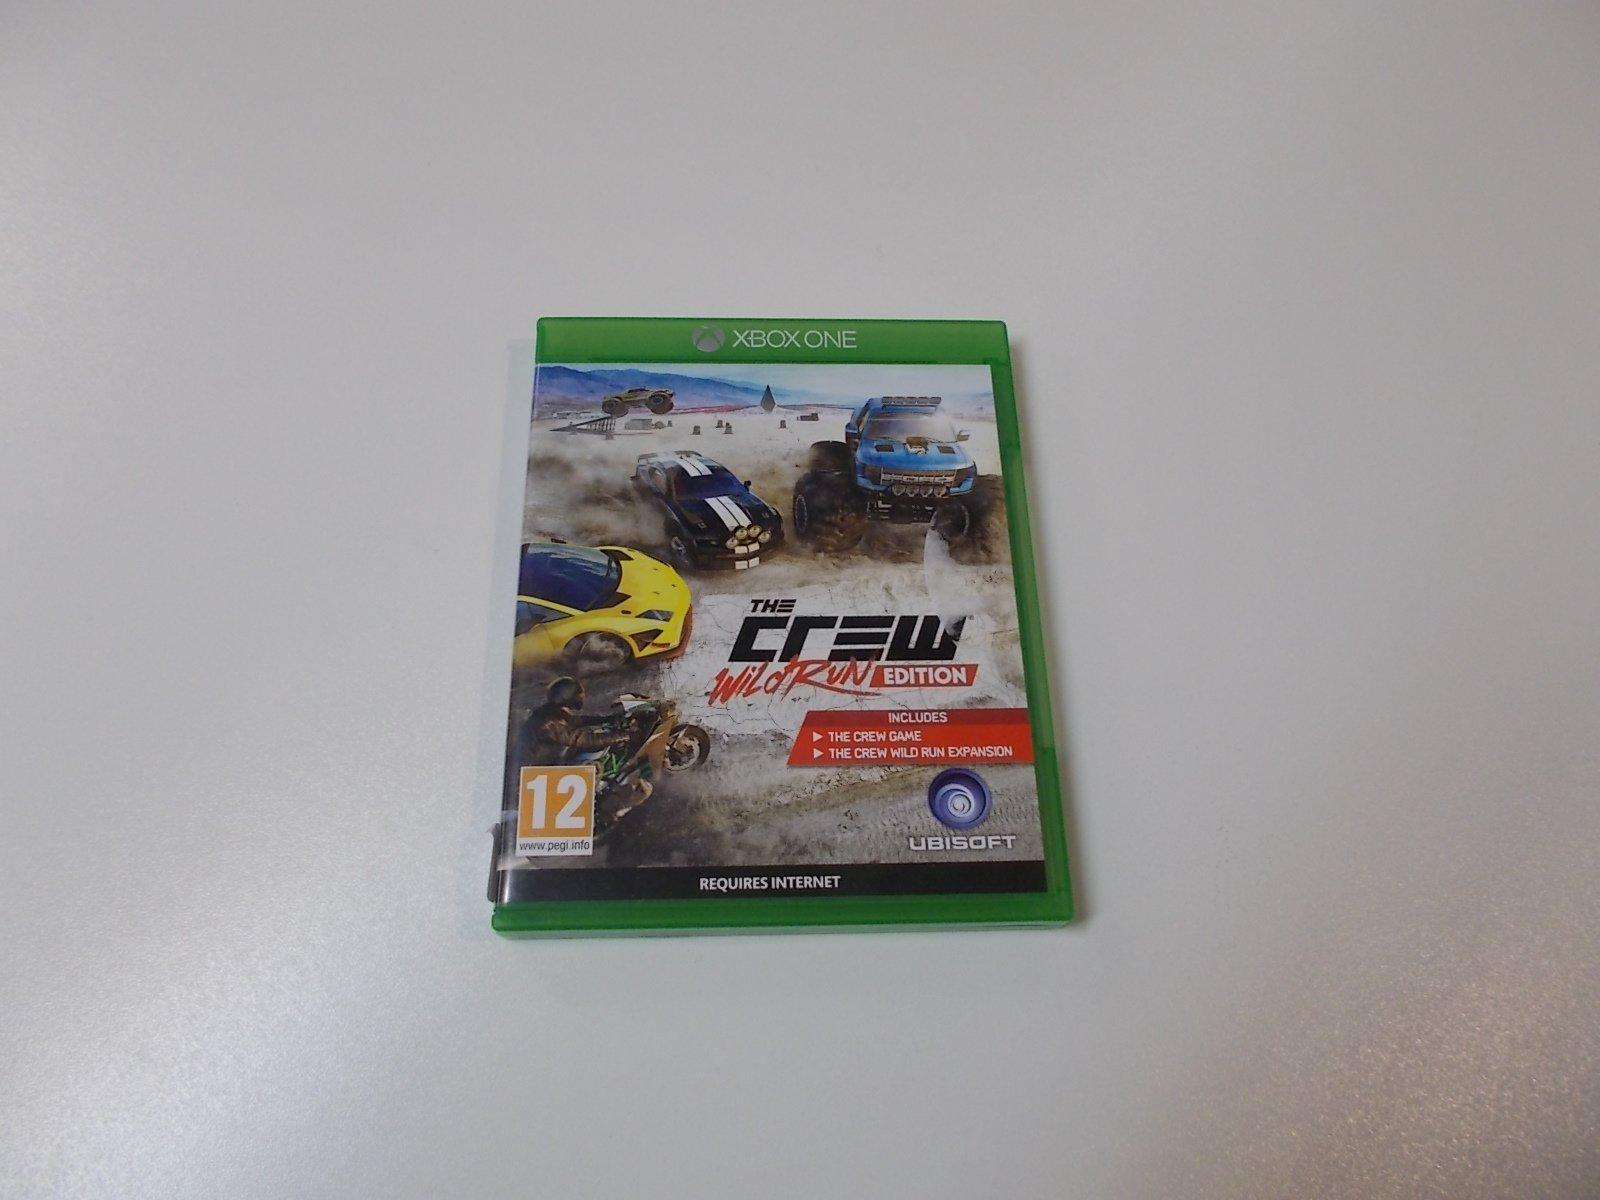 THE CREW Wild Of Run - GRA Xbox One - Opole 0462